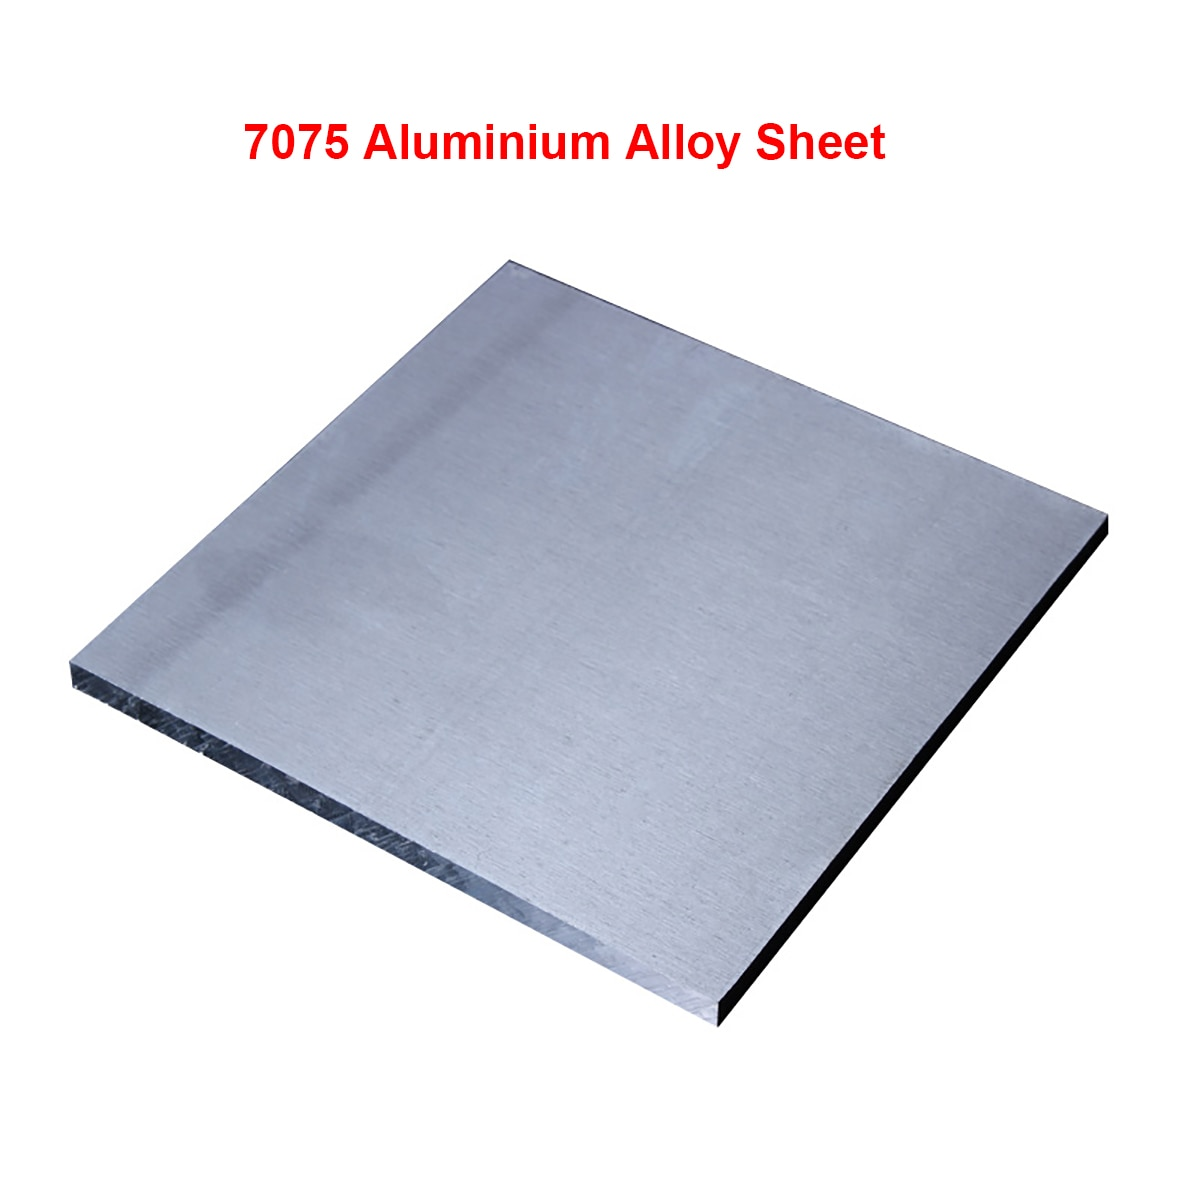 1pcs 7075 Aluminium Alloy Sheet Plate DIY Hardware Aluminium Board Block Thicked Super Hard 10mm Thickness 11 Sizes Available